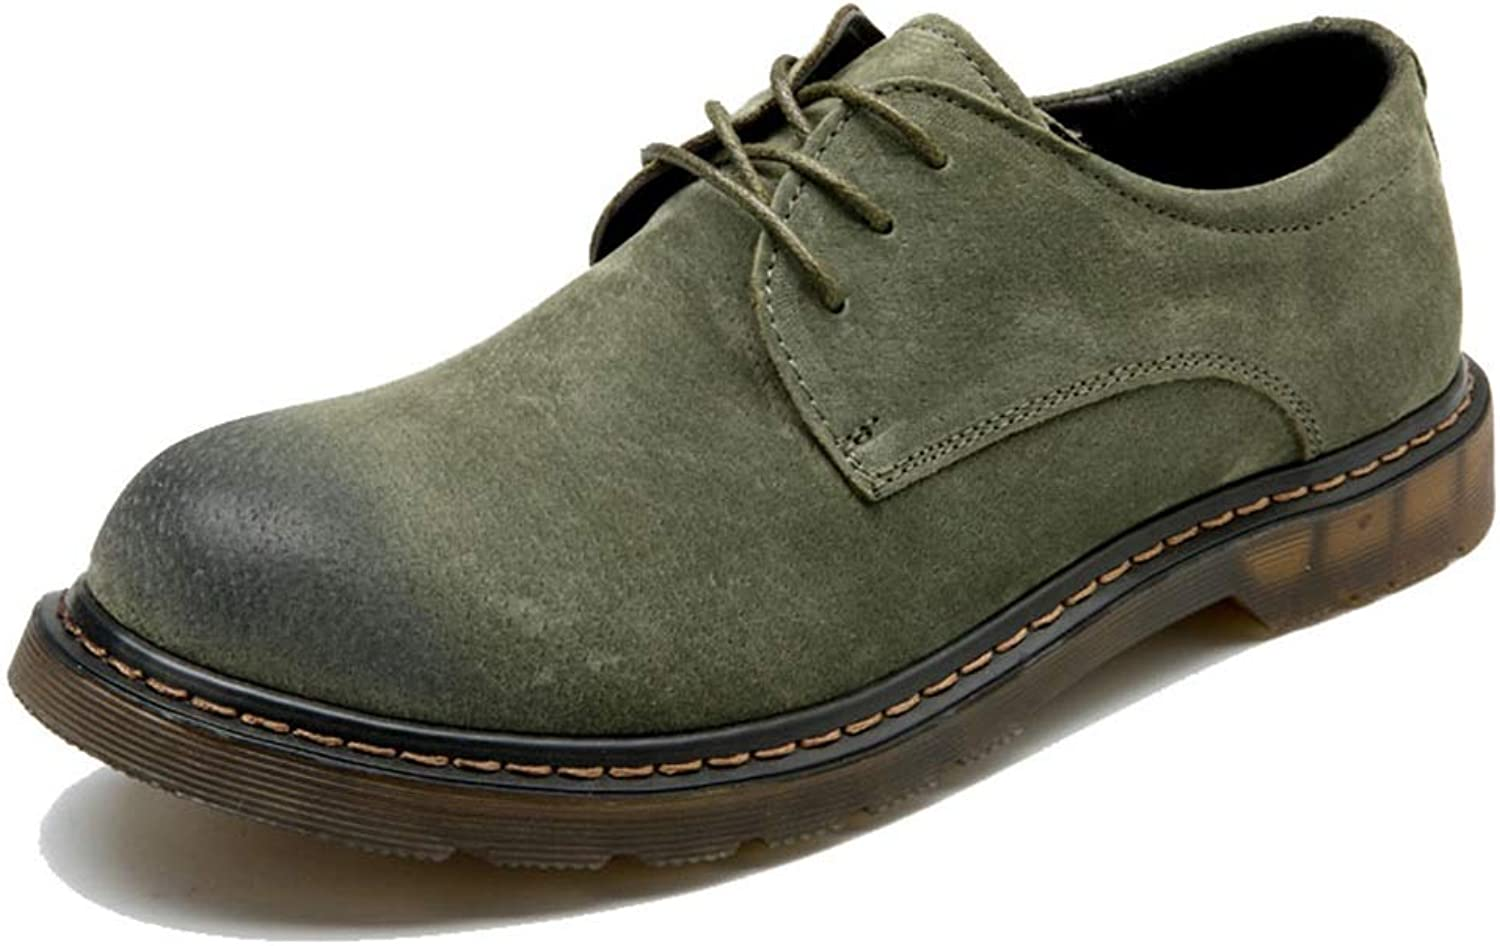 BND-SHOES ,Men's Fashionable Ankle Boots Casual OX Leather Lace-up Round Toe Work shoes Durable,Stand Wear and Tear (color   Green, Size   10 UK)